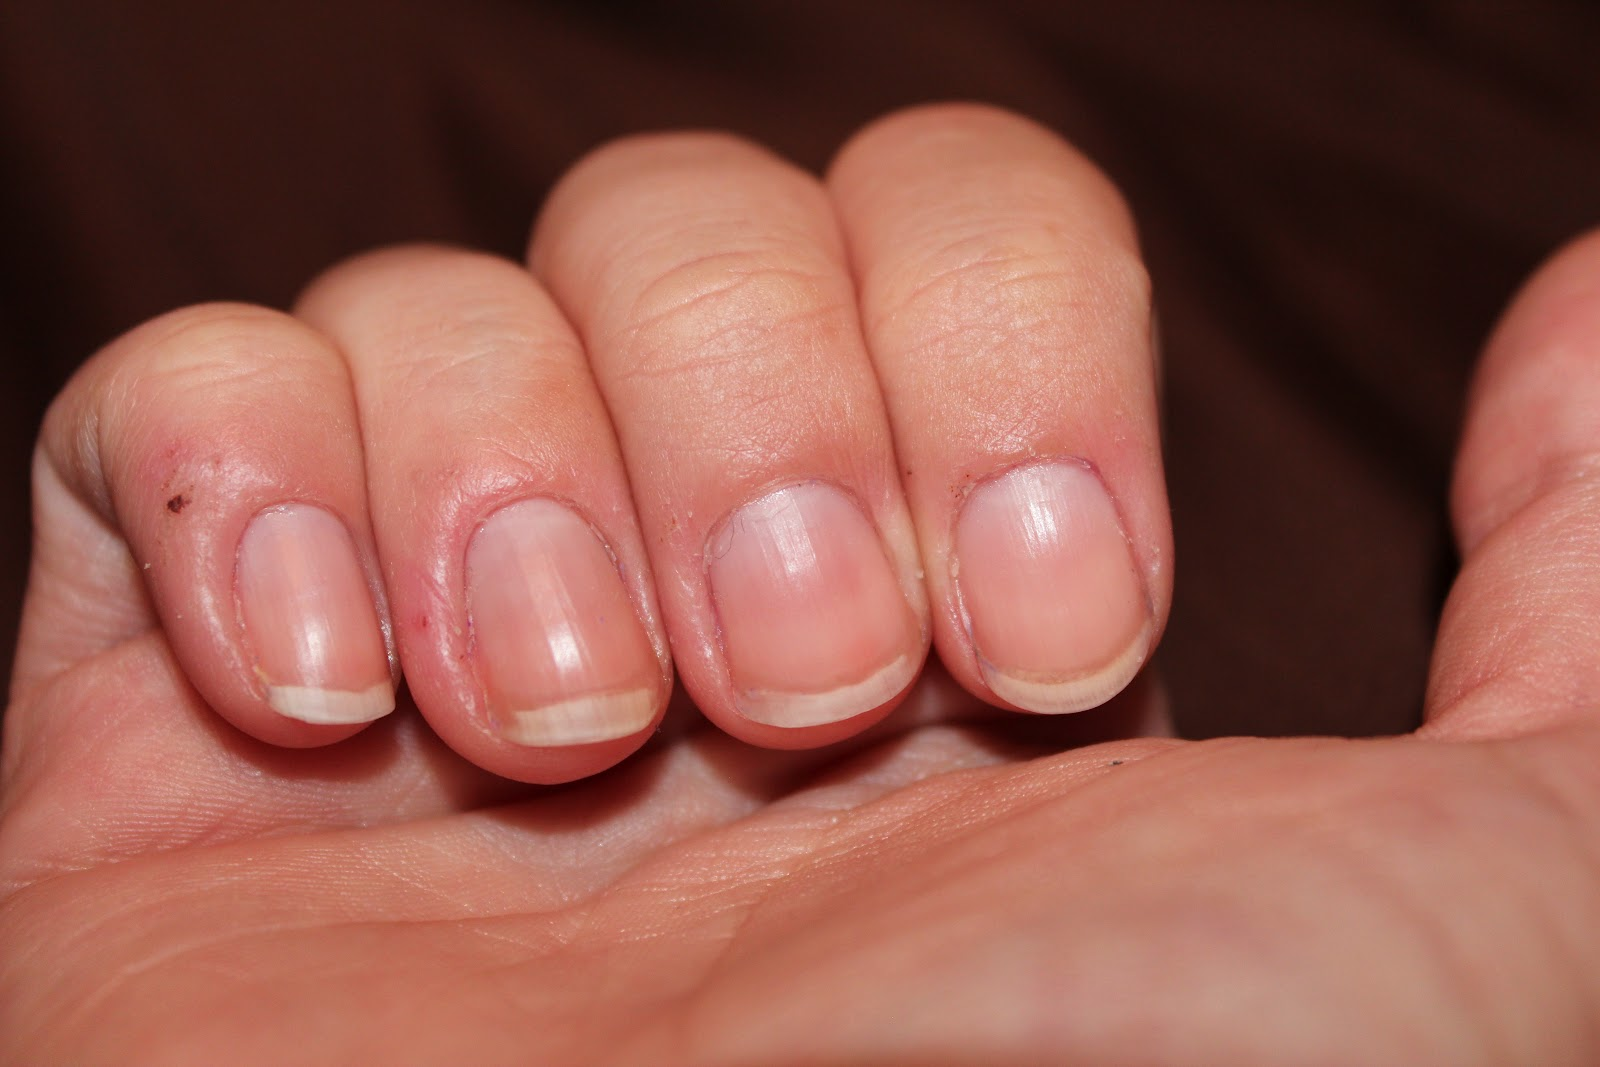 Nails 4 Dummies!: Why Another Nail Blog?